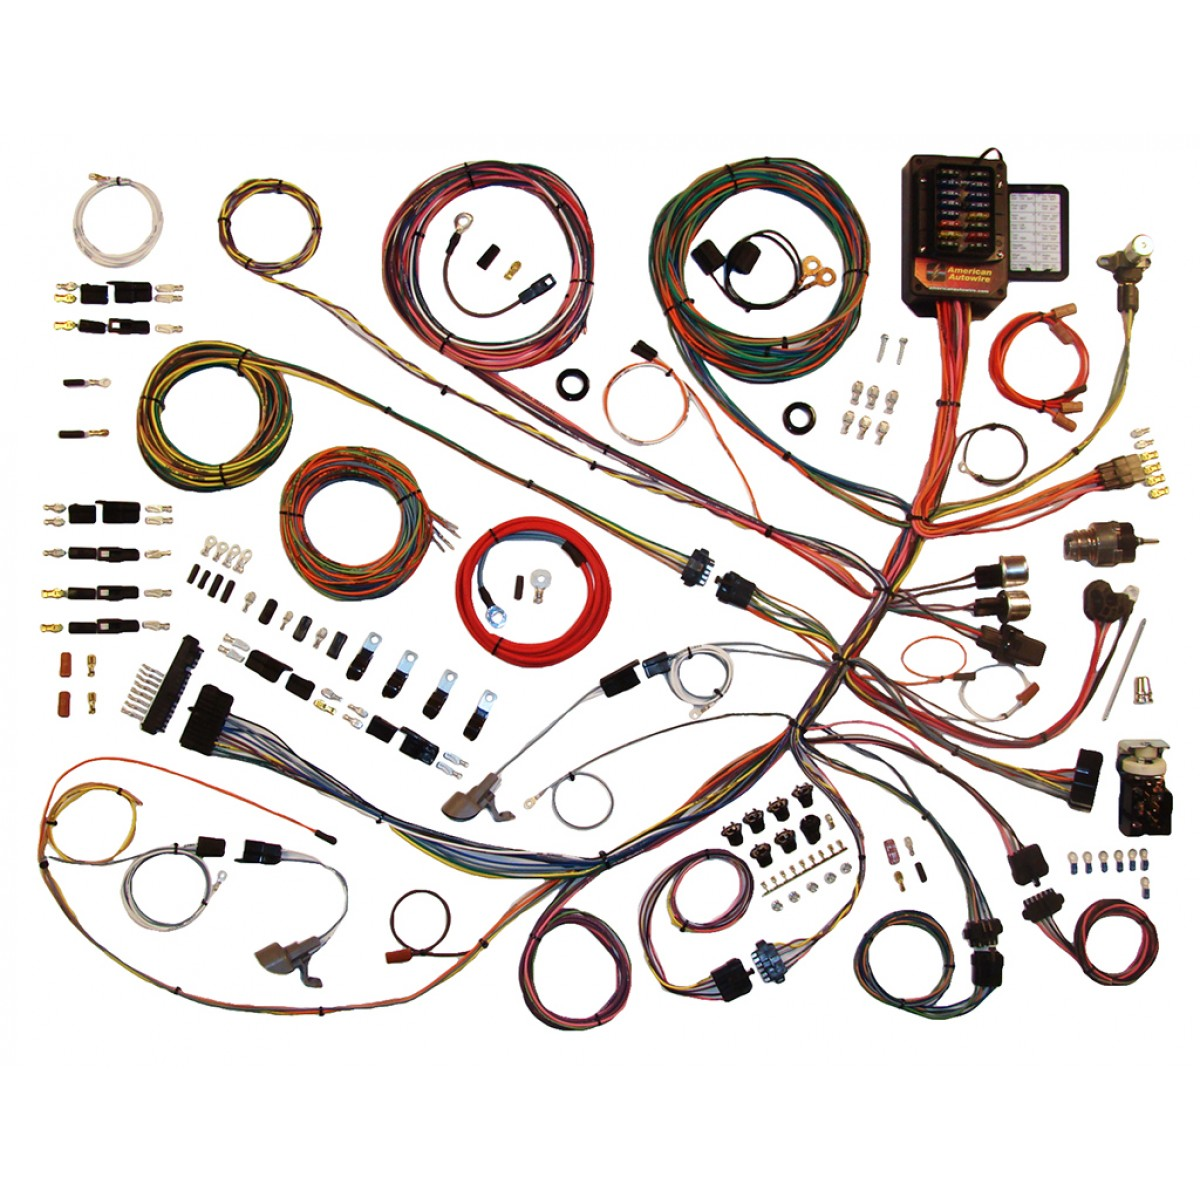 1961 1966 Ford F100 Wire Harness Kit 1961 1966 Ford Truck Part 4 3 Engine  Wiring Harness Kit Ford Wiring Harness Kits